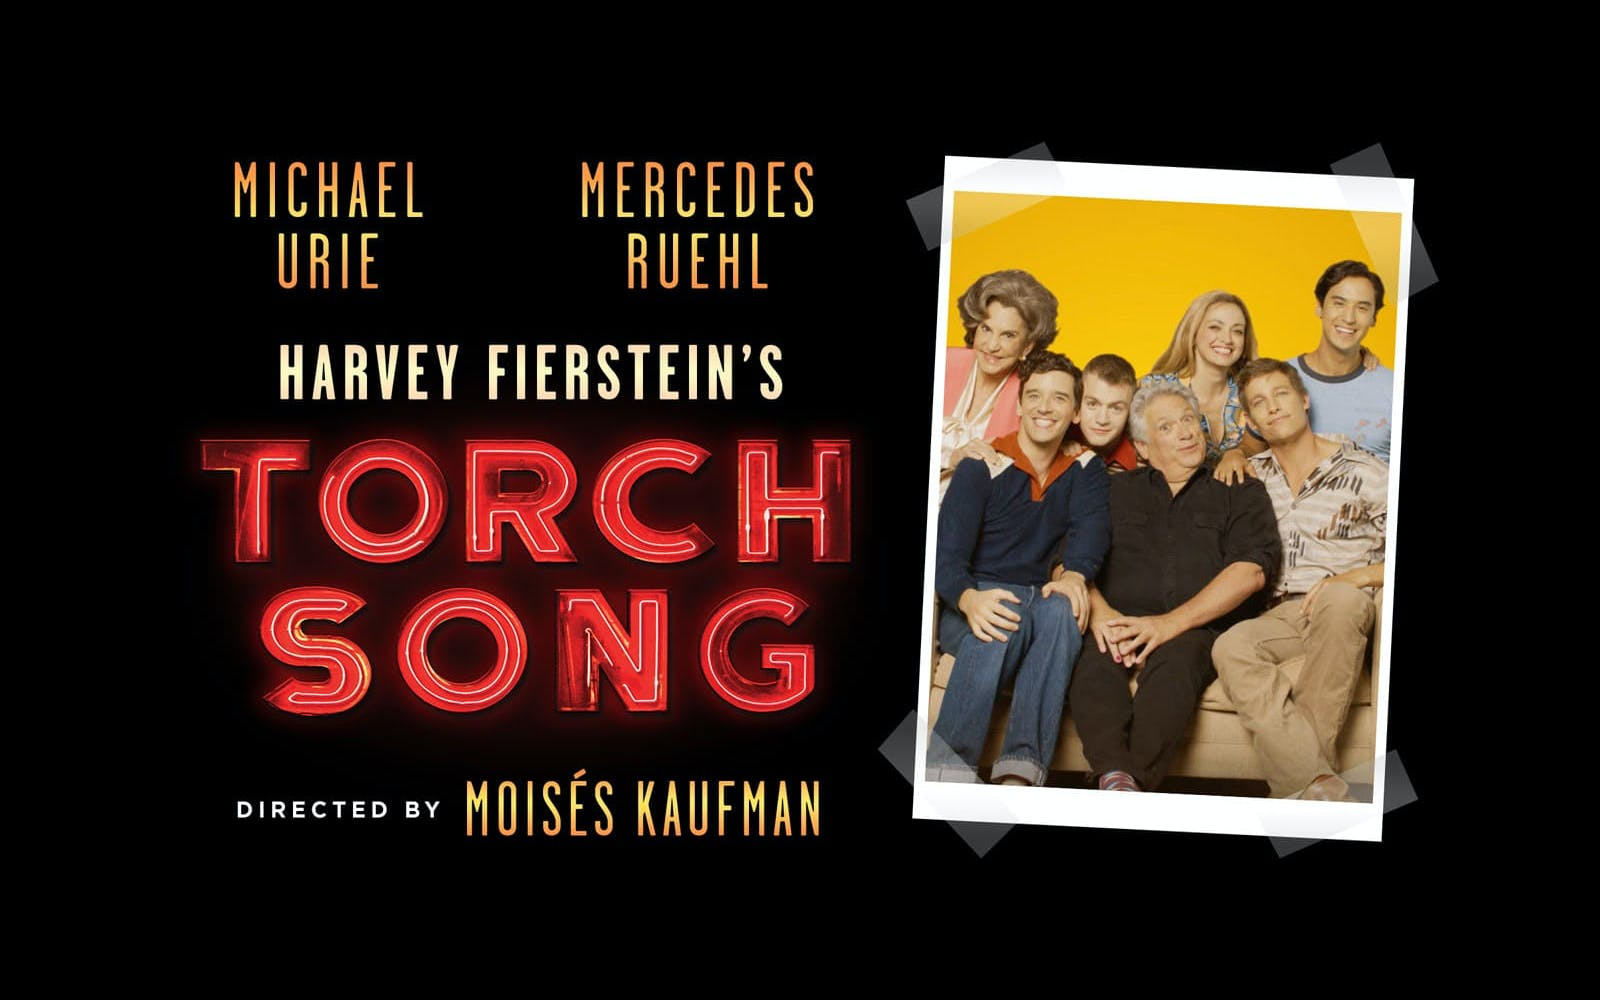 The Torch Song